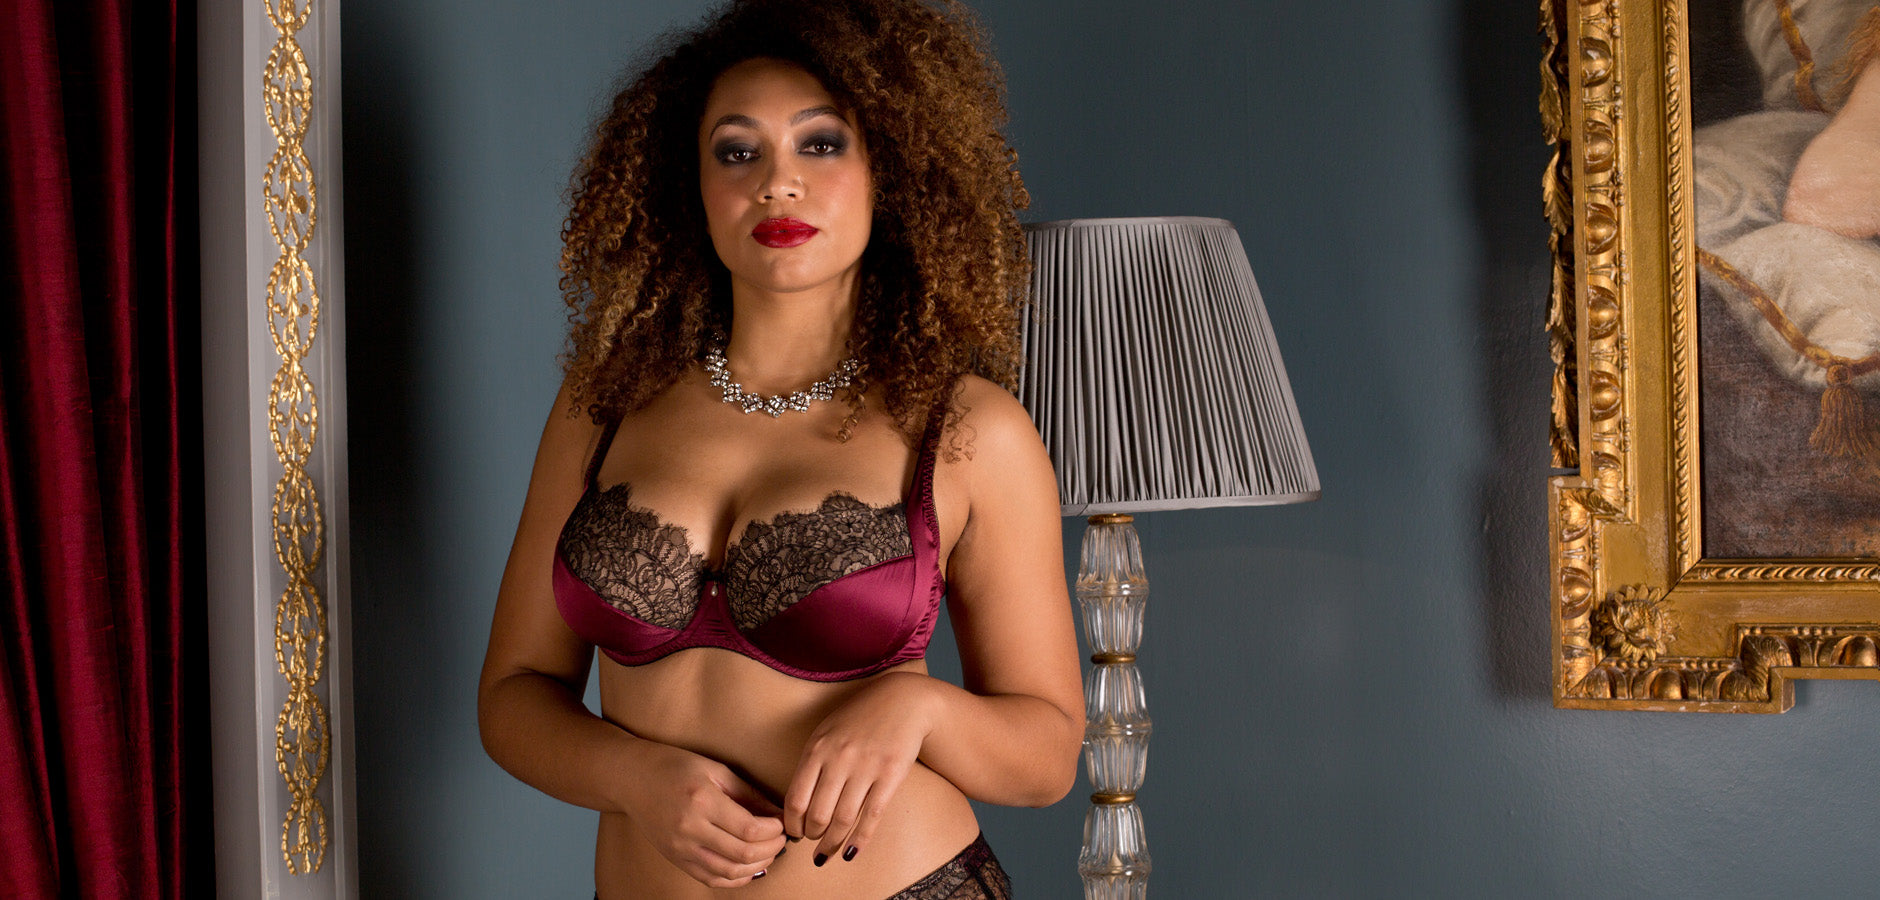 36G luxury bra in burgundy silk and black lace, by Harlow & Fox